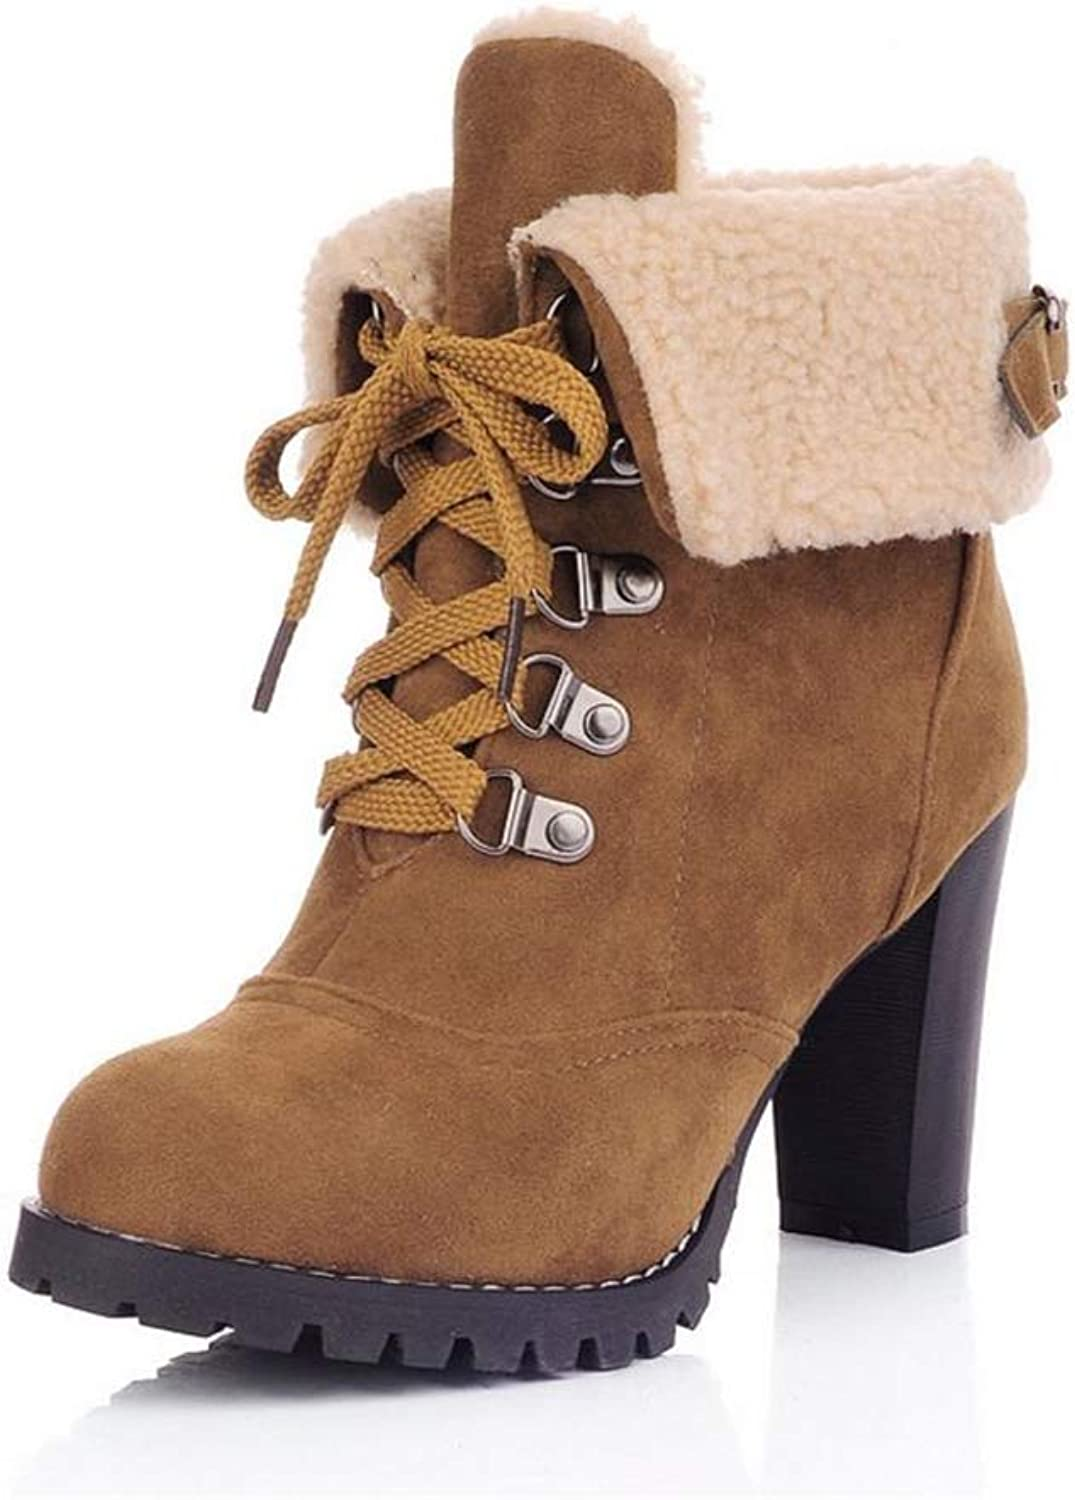 Super explosion Womens Winter Snow Boots Buckle lace up Soft Cotton Warm Short Ankle Booties